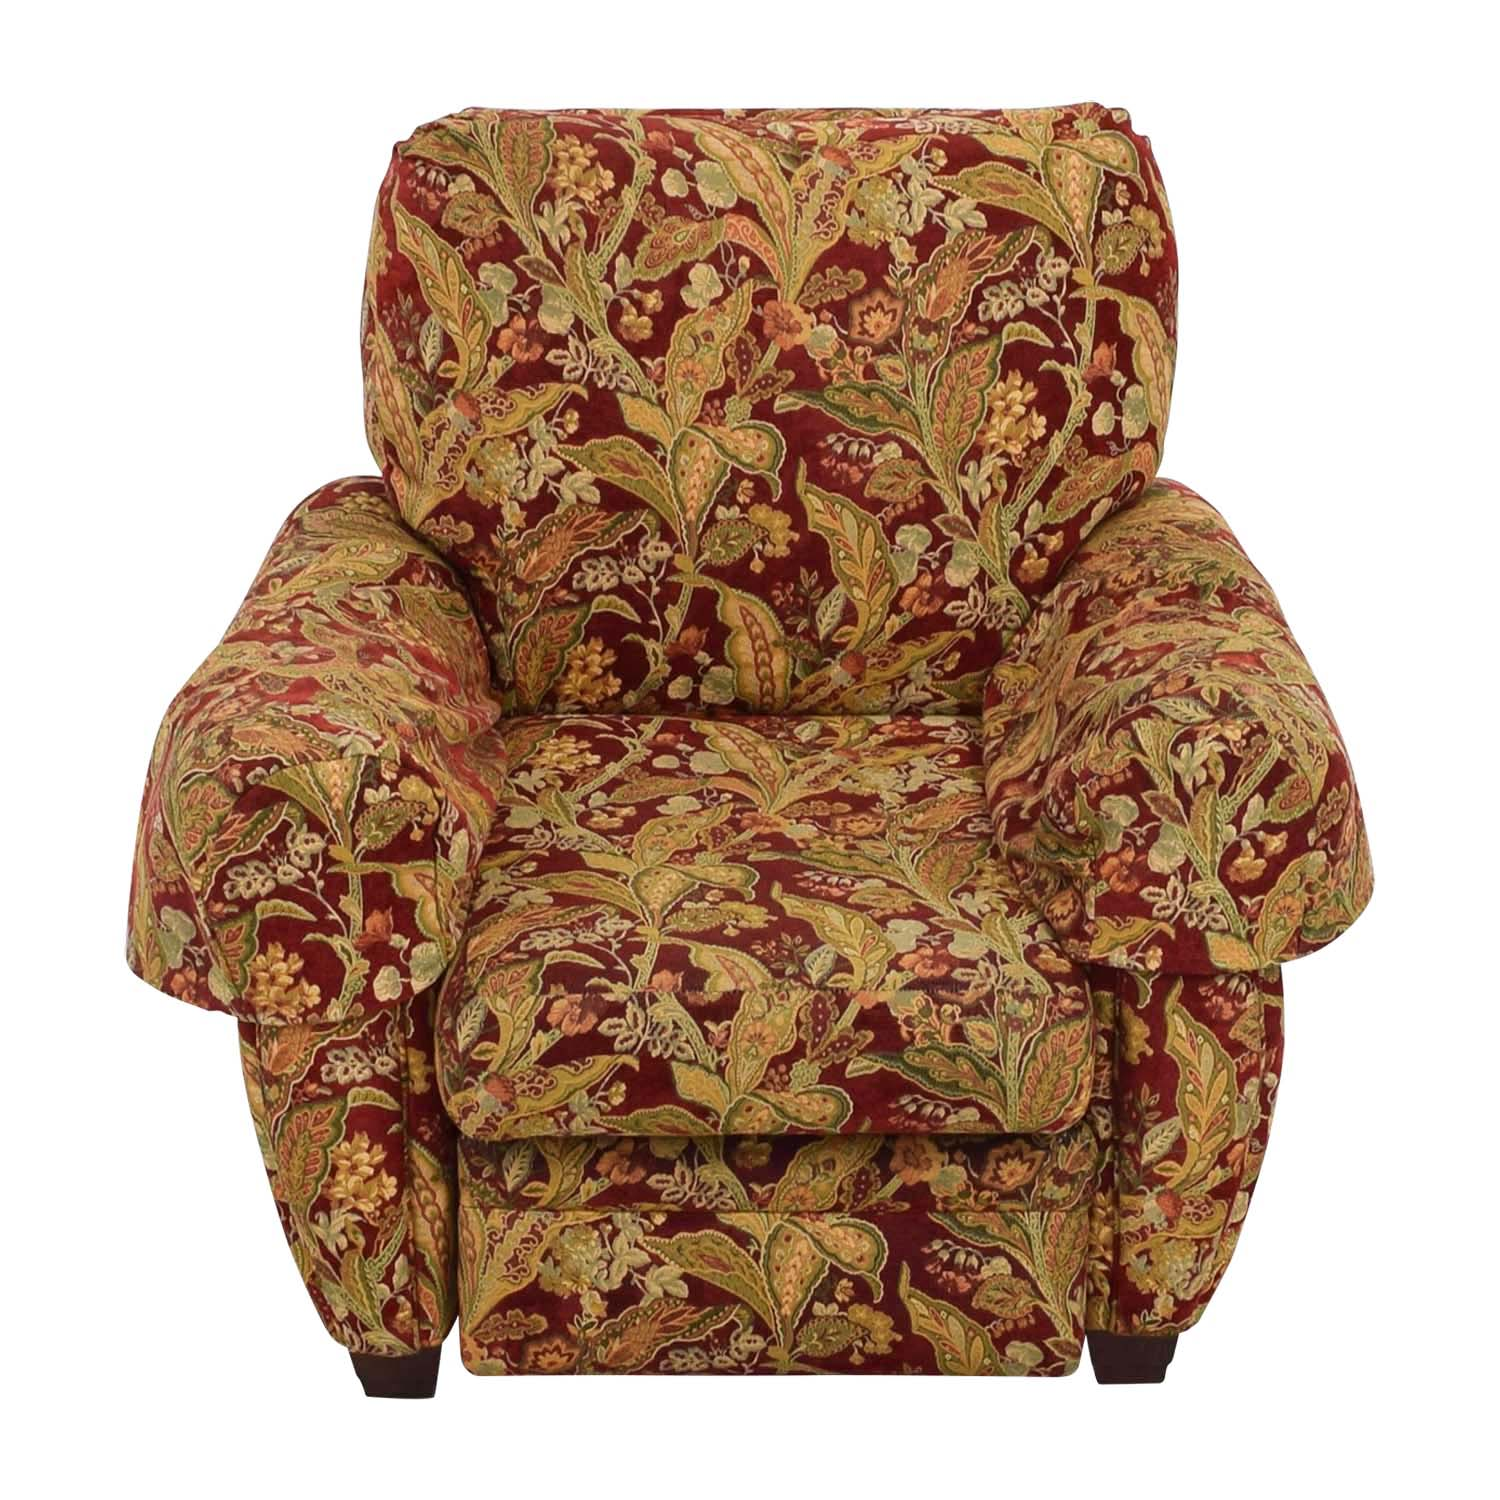 buy Lazy Boy Lazy Boy Burgundy Floral Recliner online